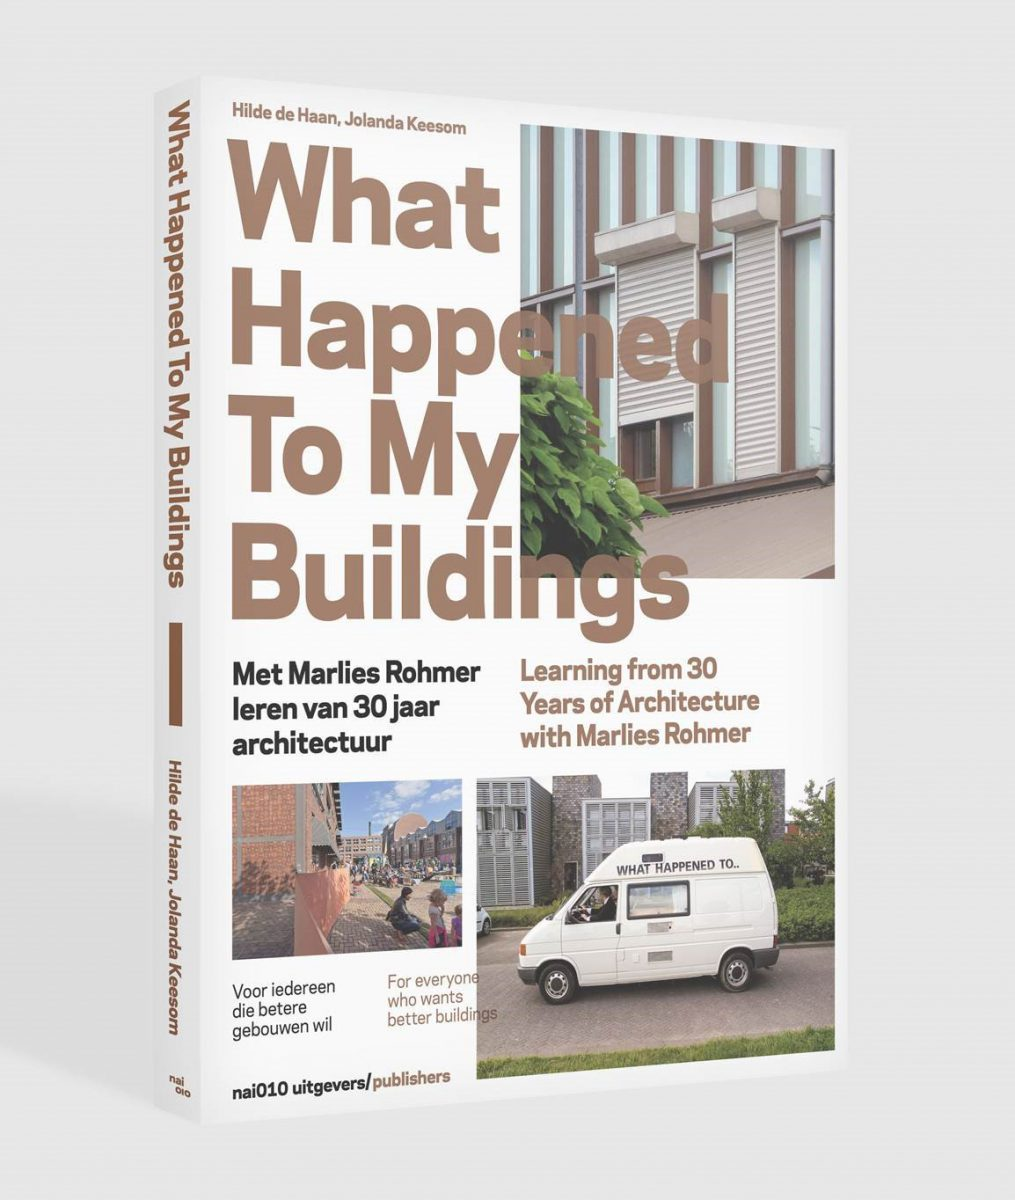 Marlies Rohmer, sustainability, research, expiriation date, trial & error, What Happened To My Buildings, what happened to my buildings after 25 year